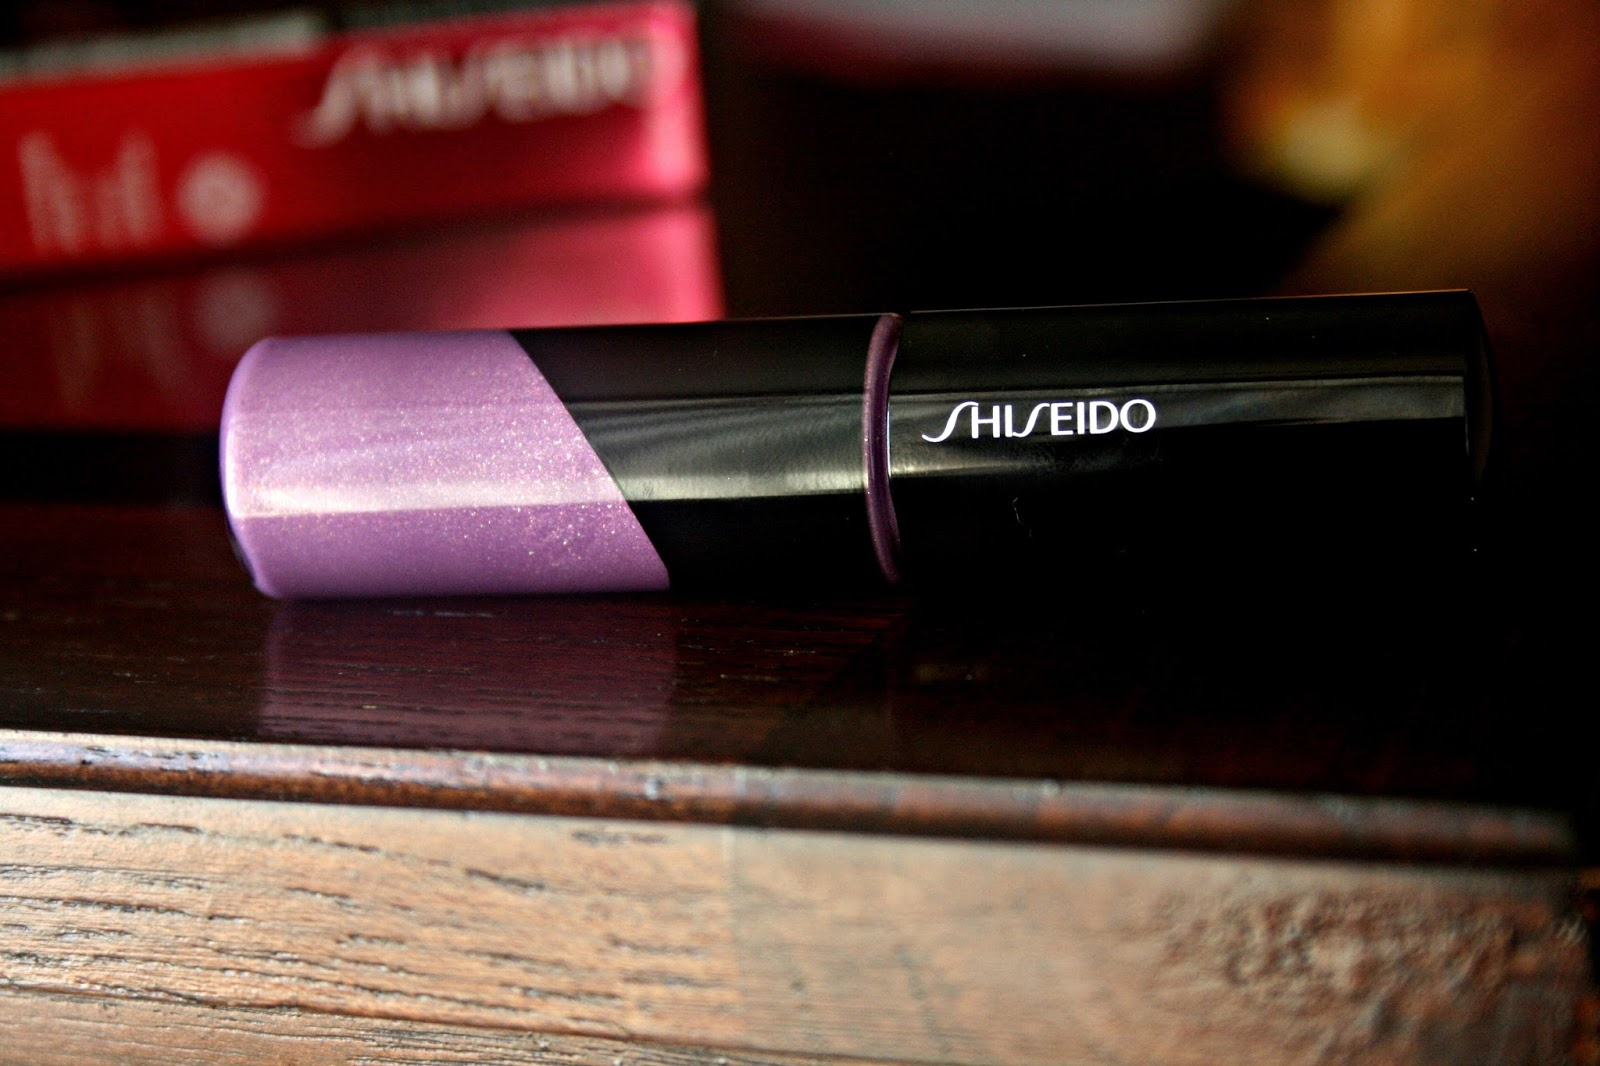 Shiseido Lacquer Gloss in VI207 Nebula Review, Photos & Swatches